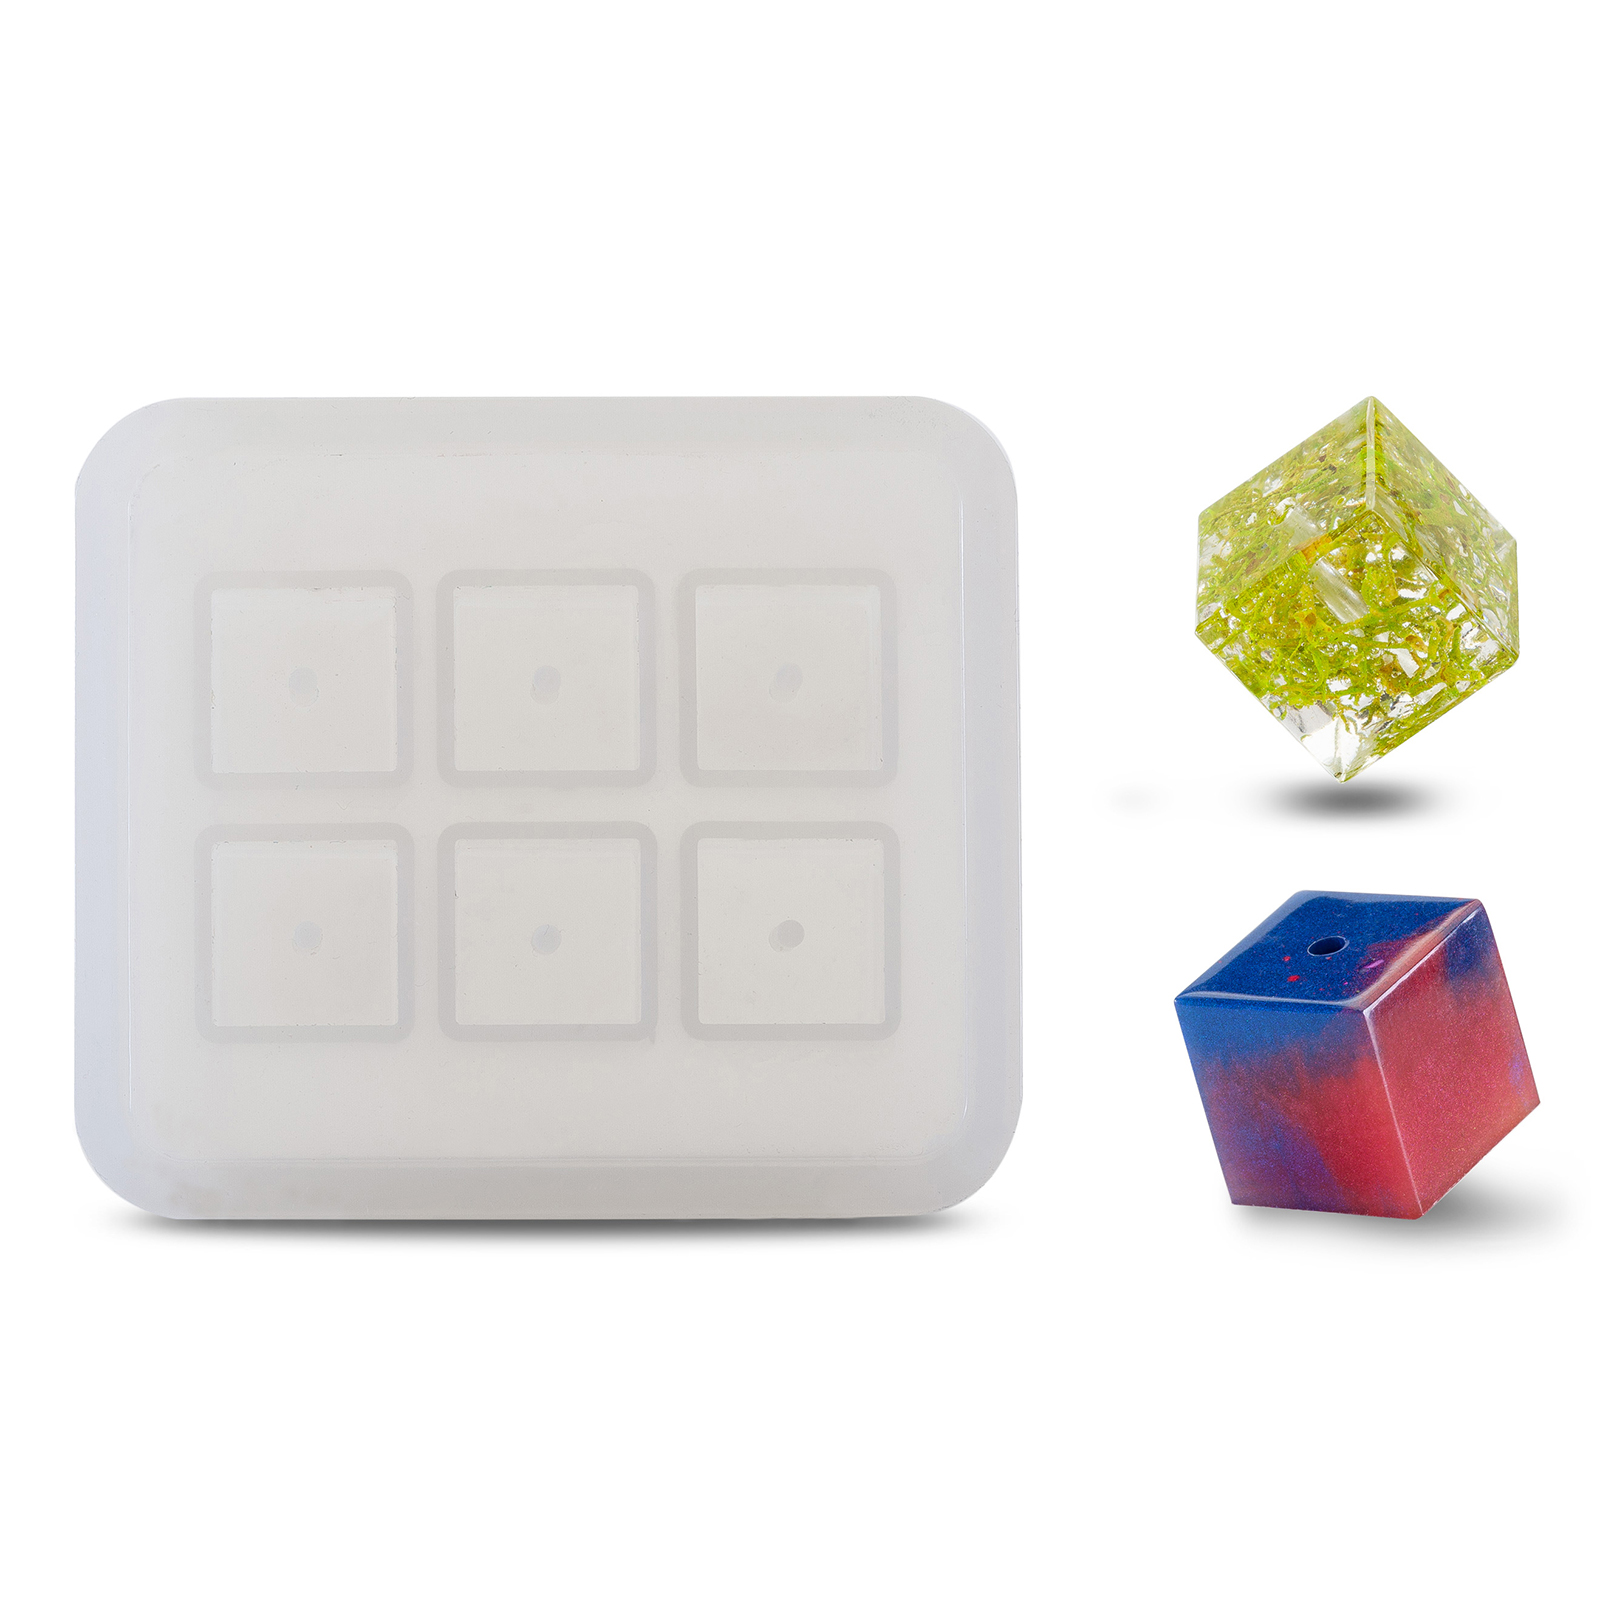 CUBE BEADS SILICONE MOULDS FOR EPOXY RESIN